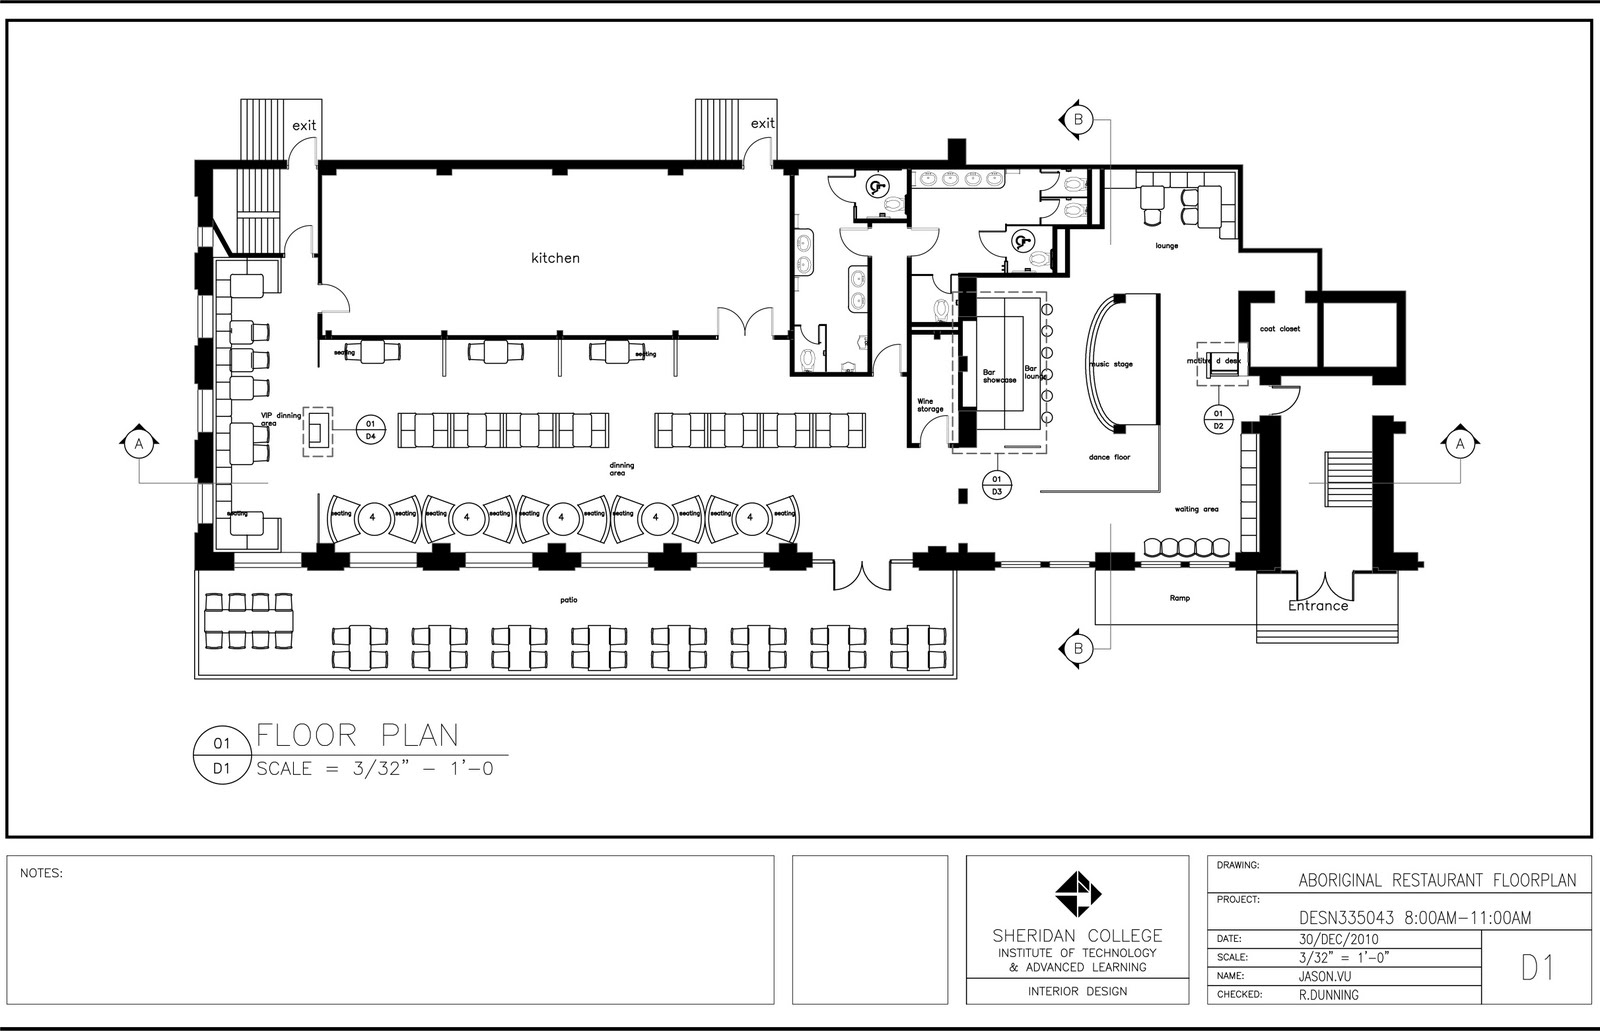 Restaurant Kitchen Floor Plan italian restaurant floor plan ~ home design and furniture ideas